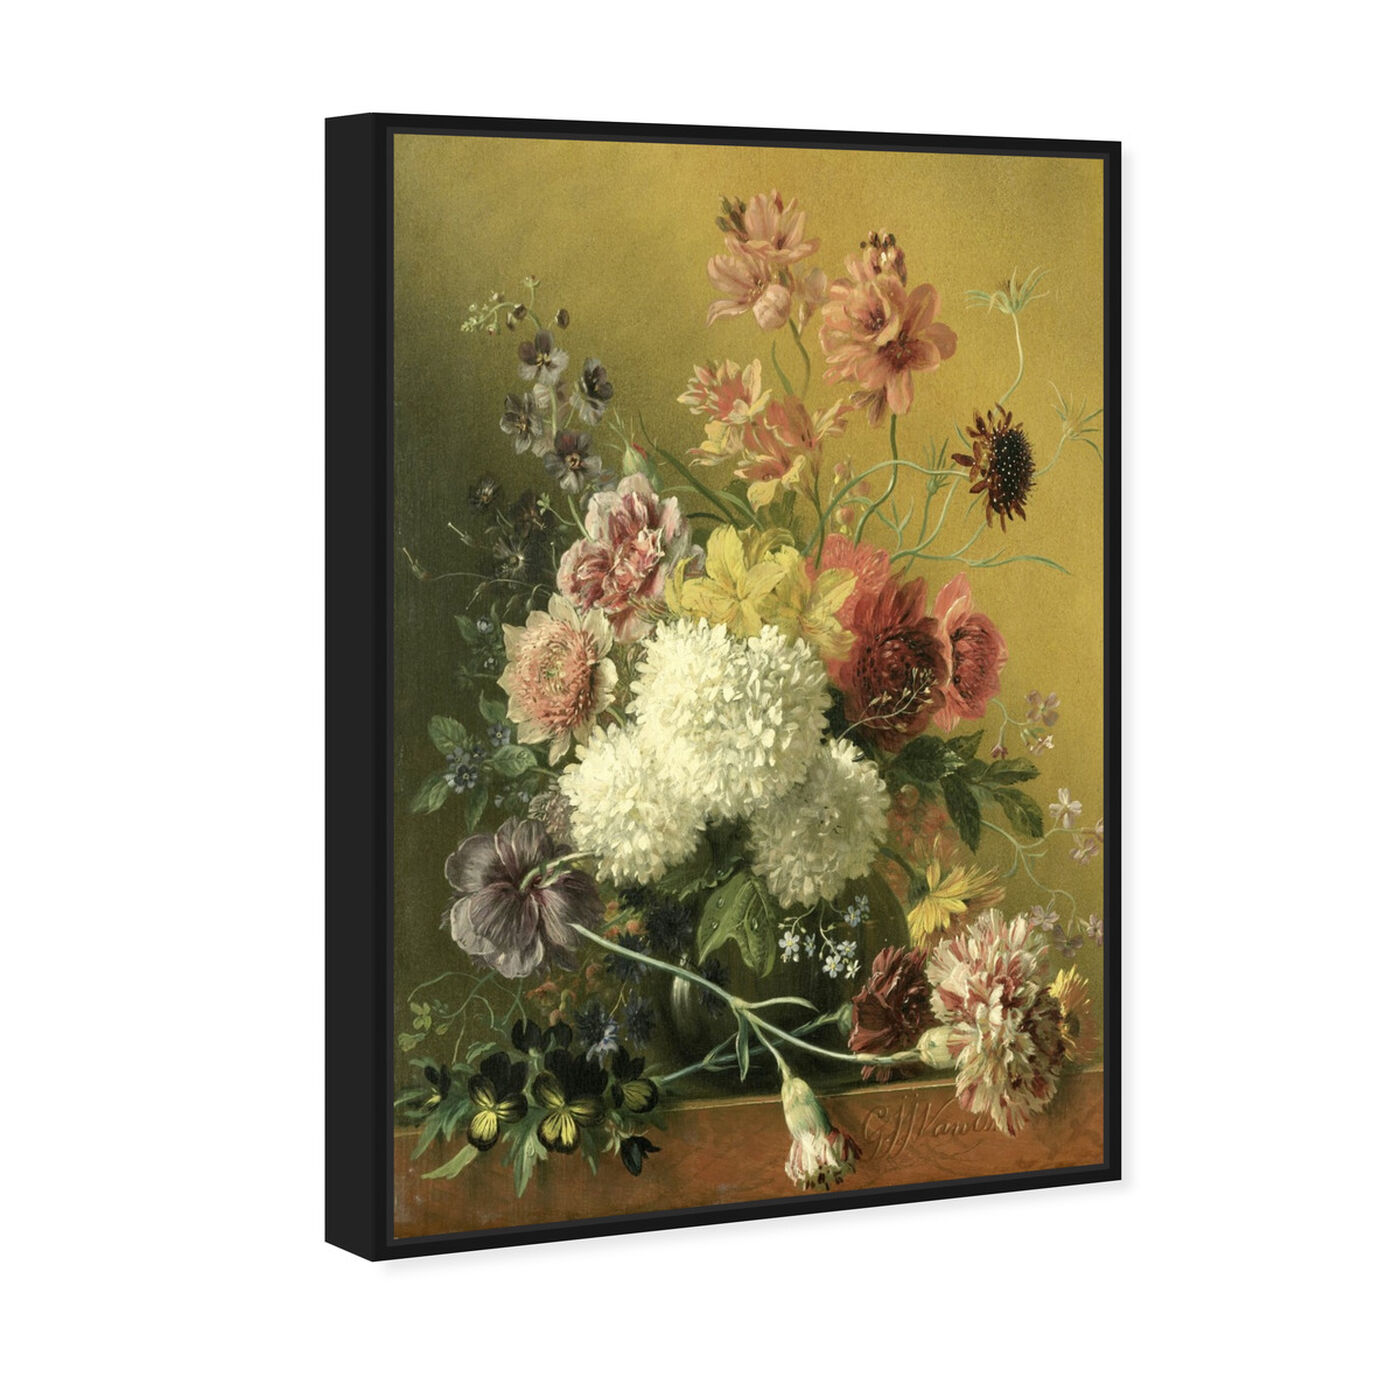 Angled view of Flower Arrangement - The Art Cabinet featuring classic and figurative and french décor art.